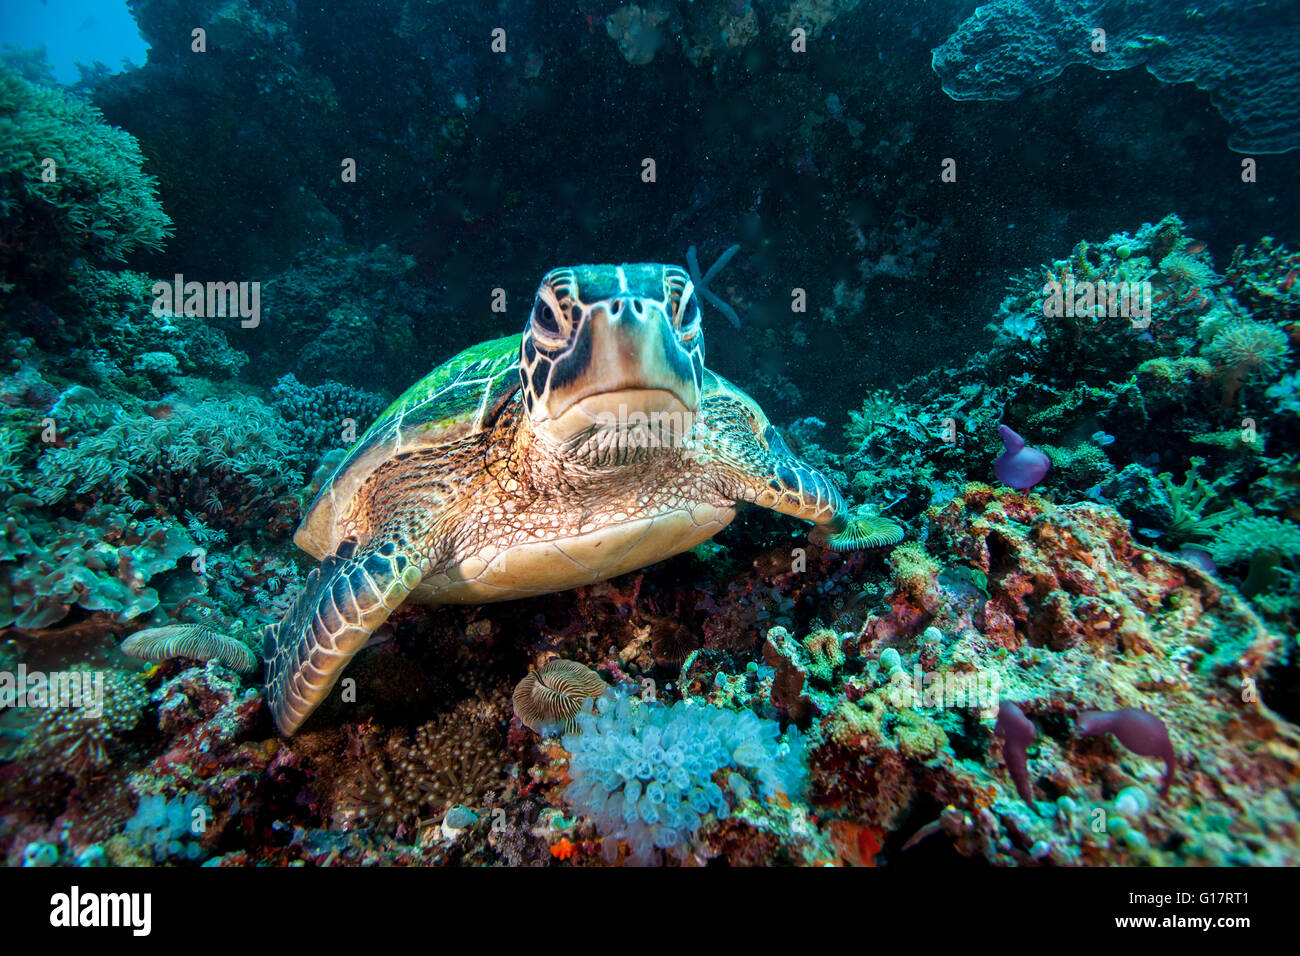 Rare green sea turtle (Chelonia Mydas), swimming in open ocean,, Cebu, Philippines - Stock Image